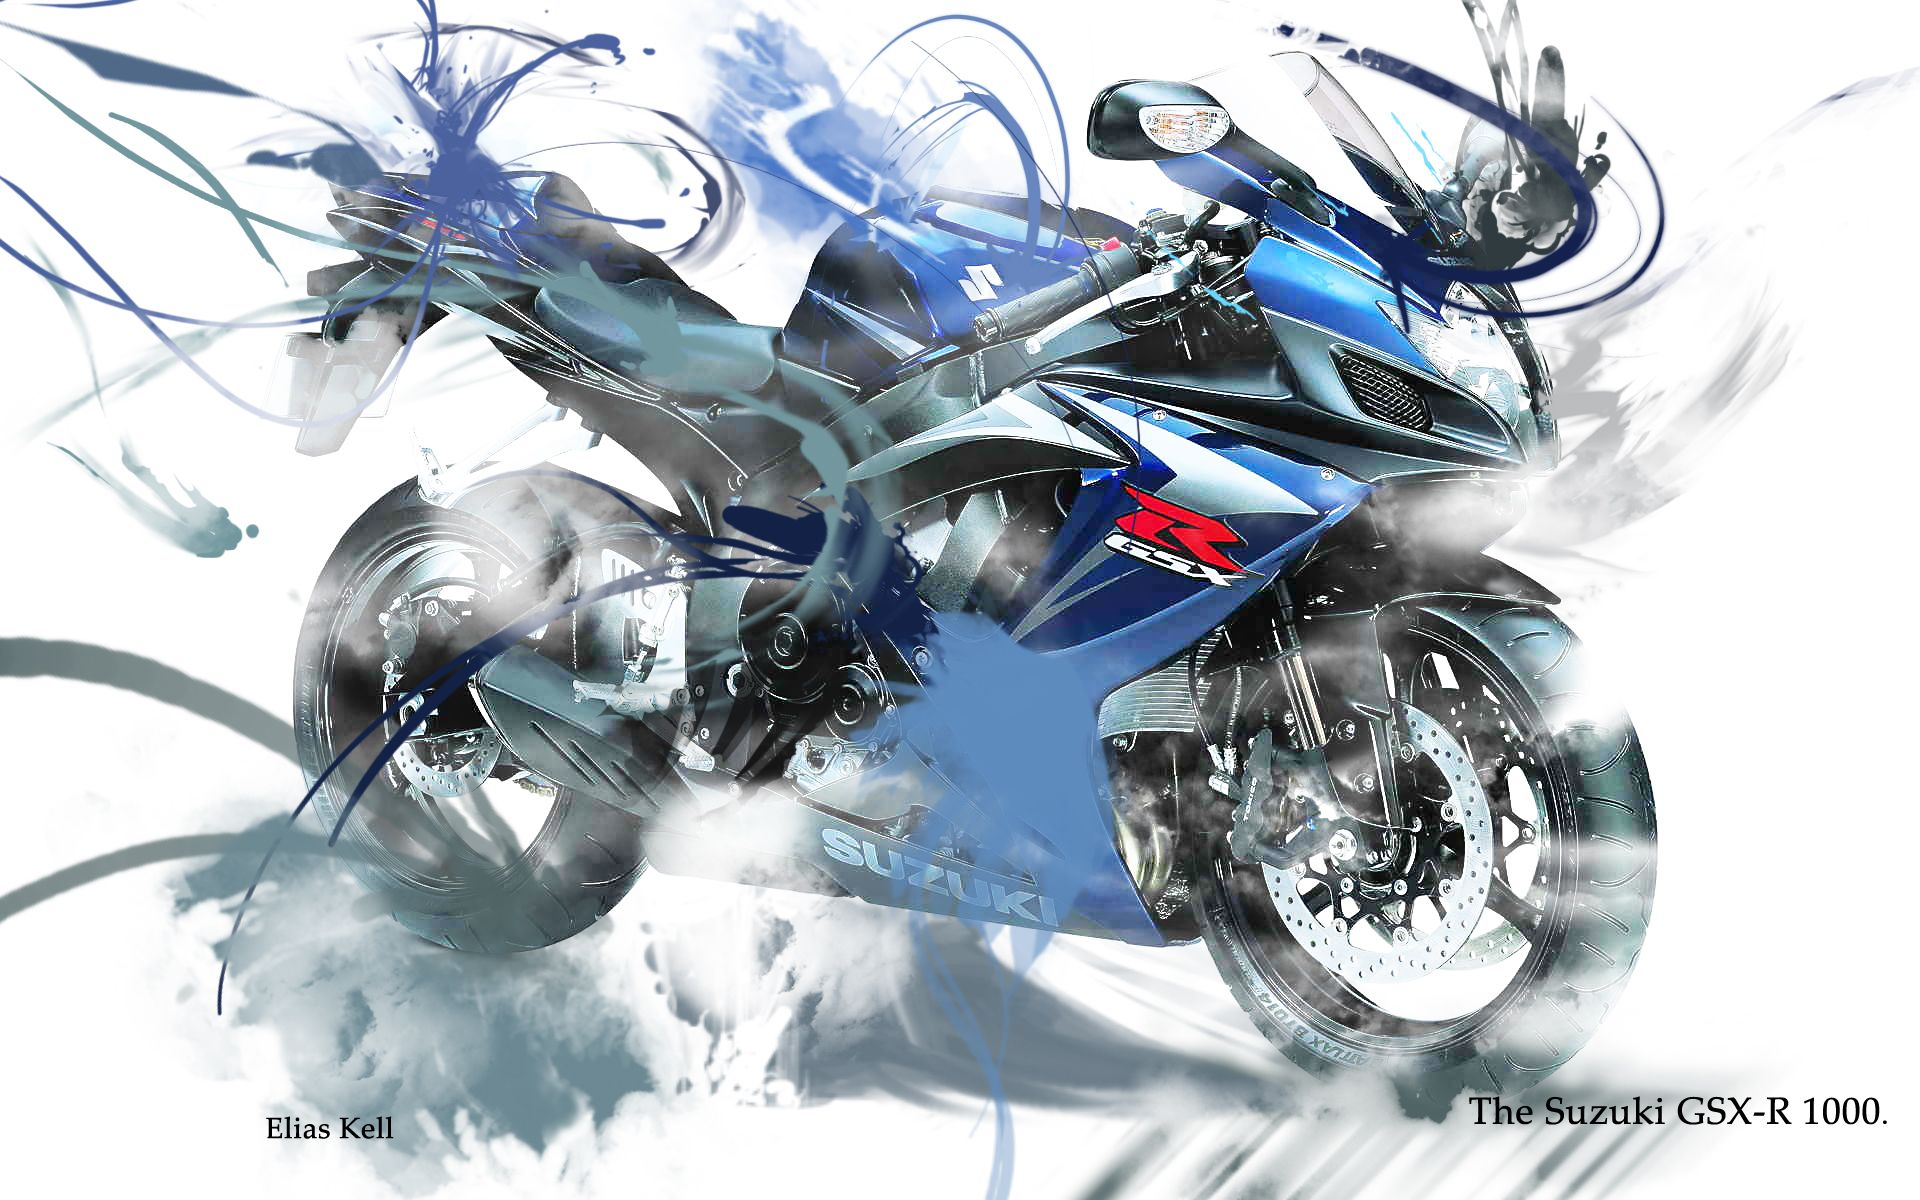 Suzuki Gsxr 1000 Wallpaper 18720 Hd Wallpapers Bikes Pinterest Sepeda Bmx Sni Slb203